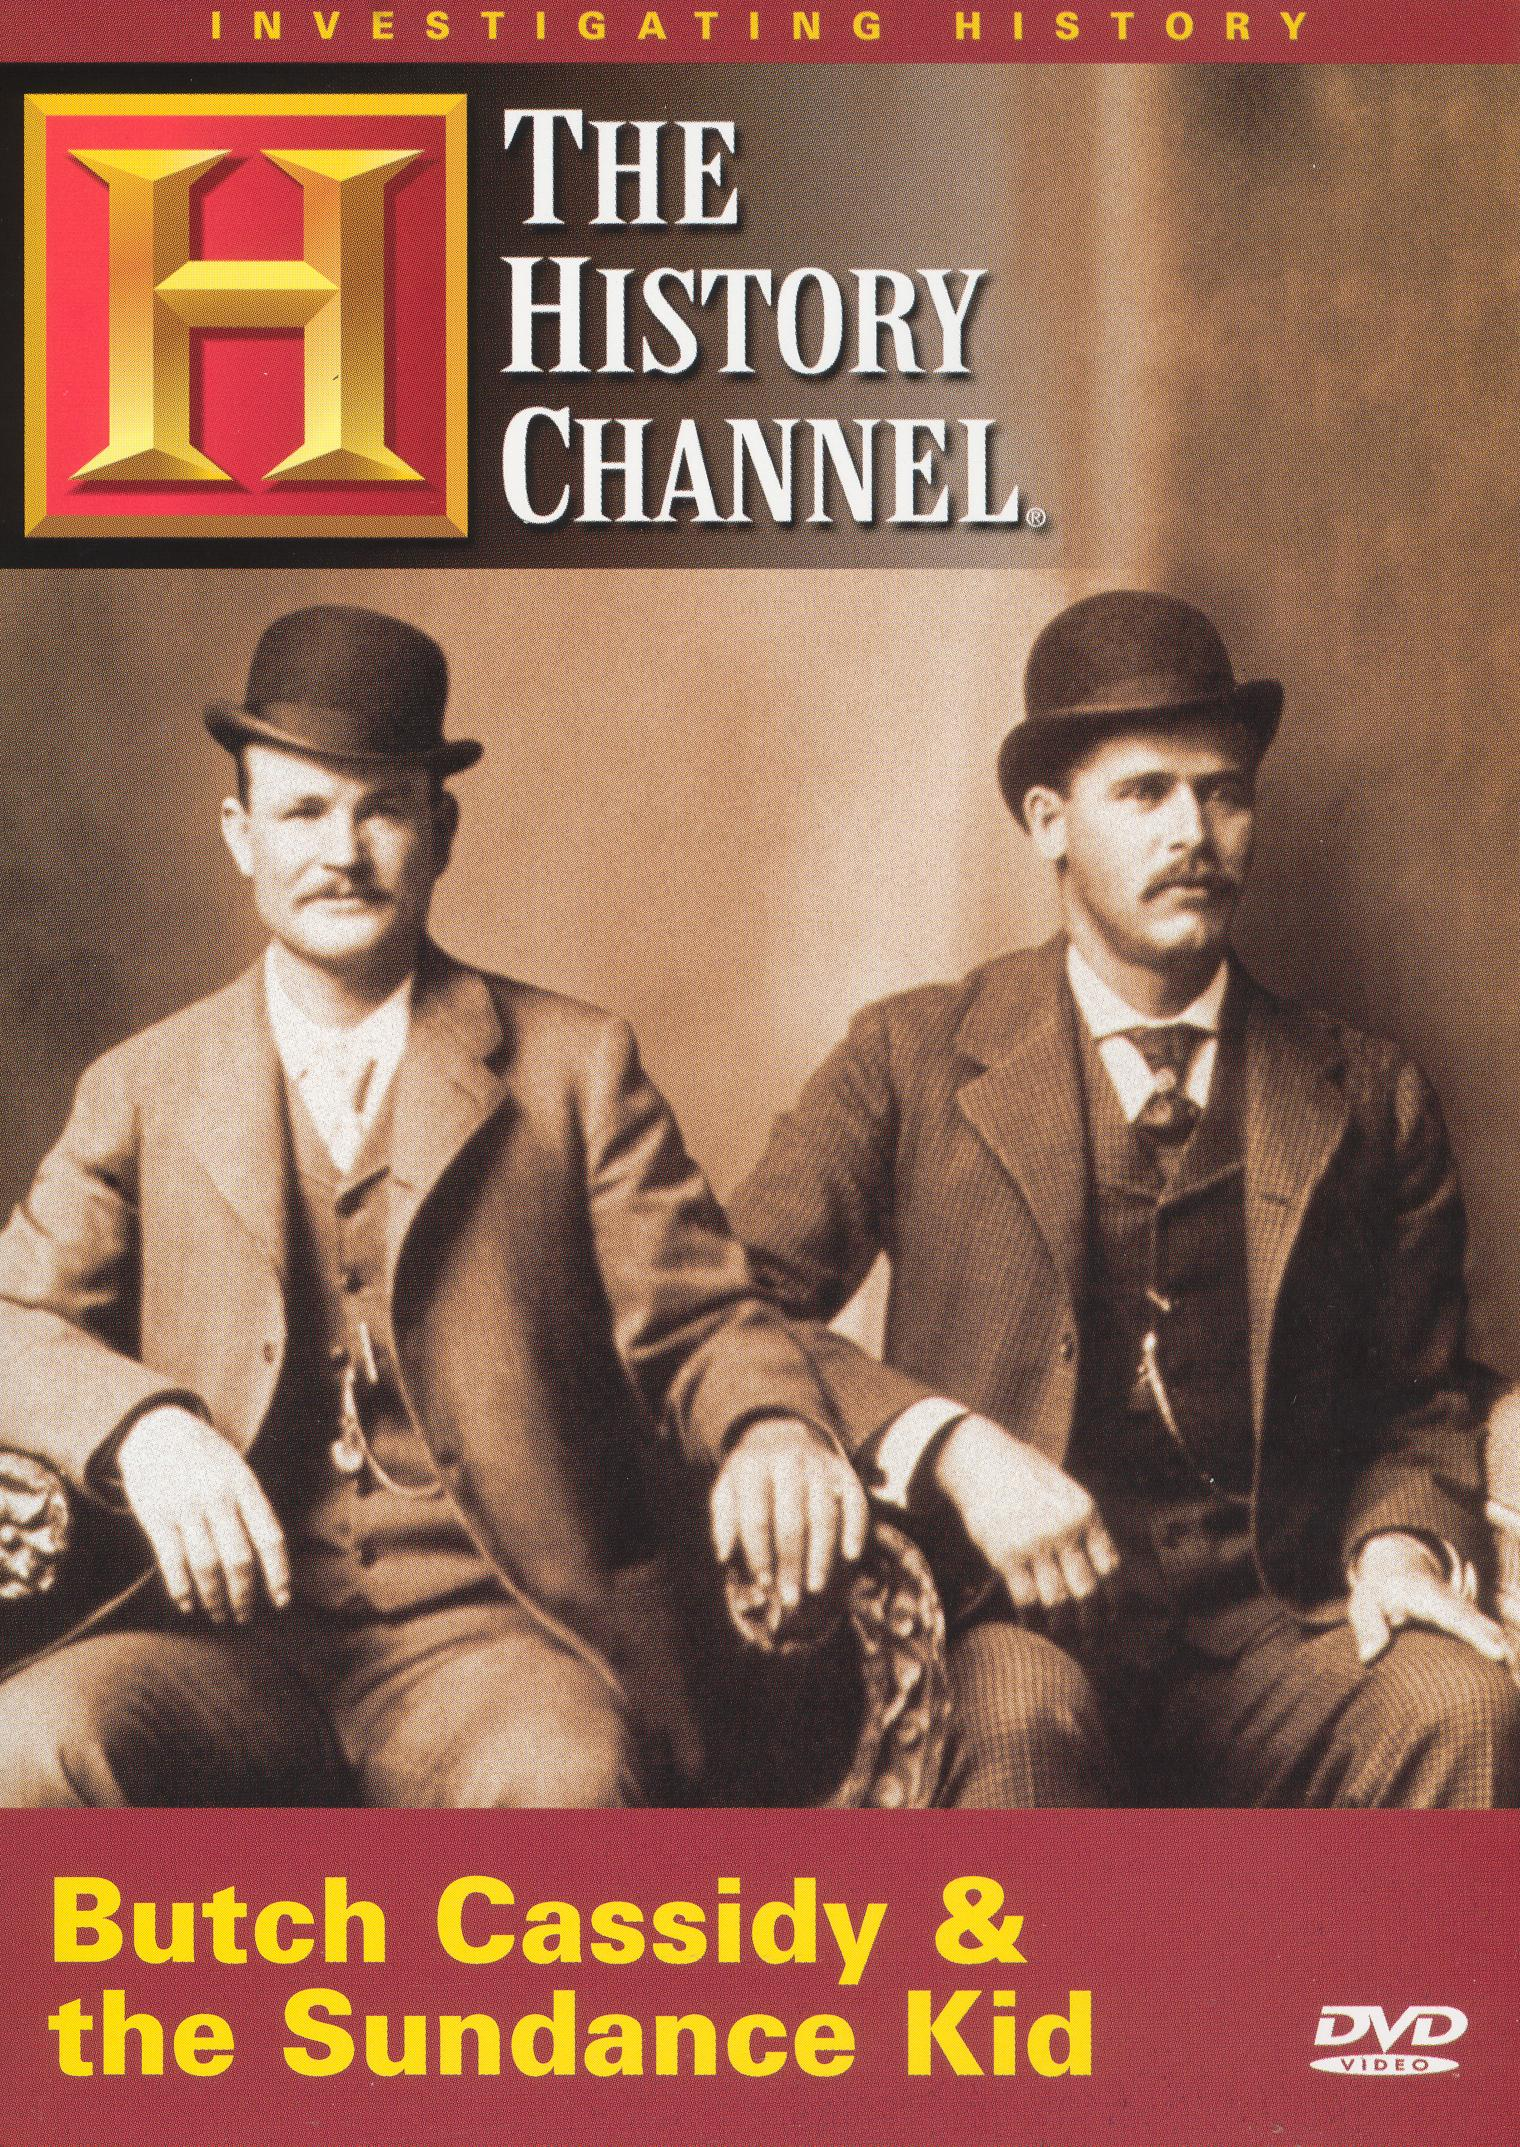 Investigating History: Butch Cassidy and the Sundance Kid